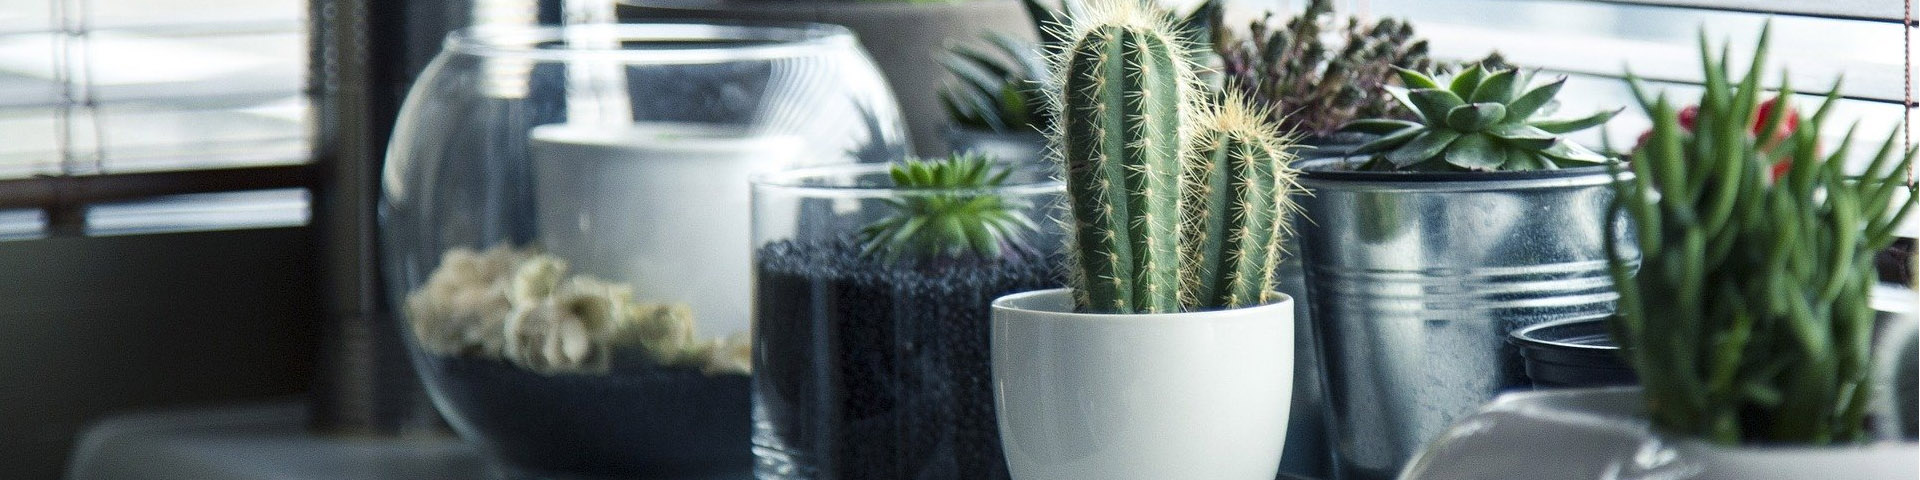 different house plants in bowls